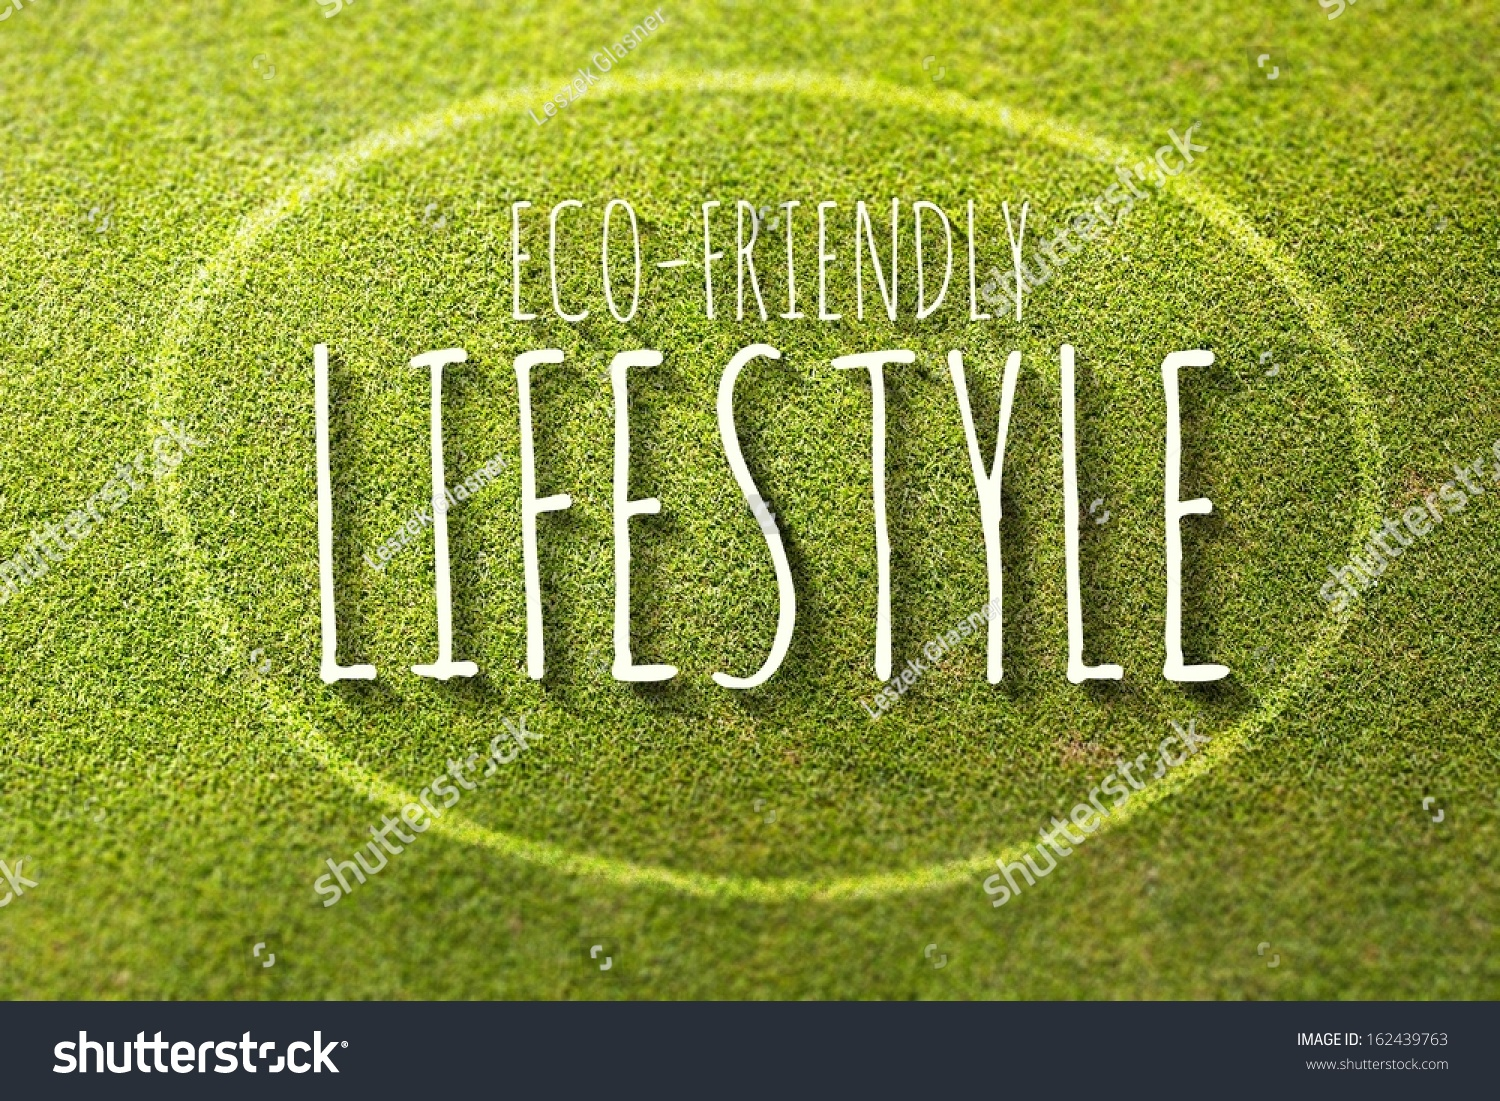 Ecofriendly Lifestyle Poster Illustration Natural Life Stock ...